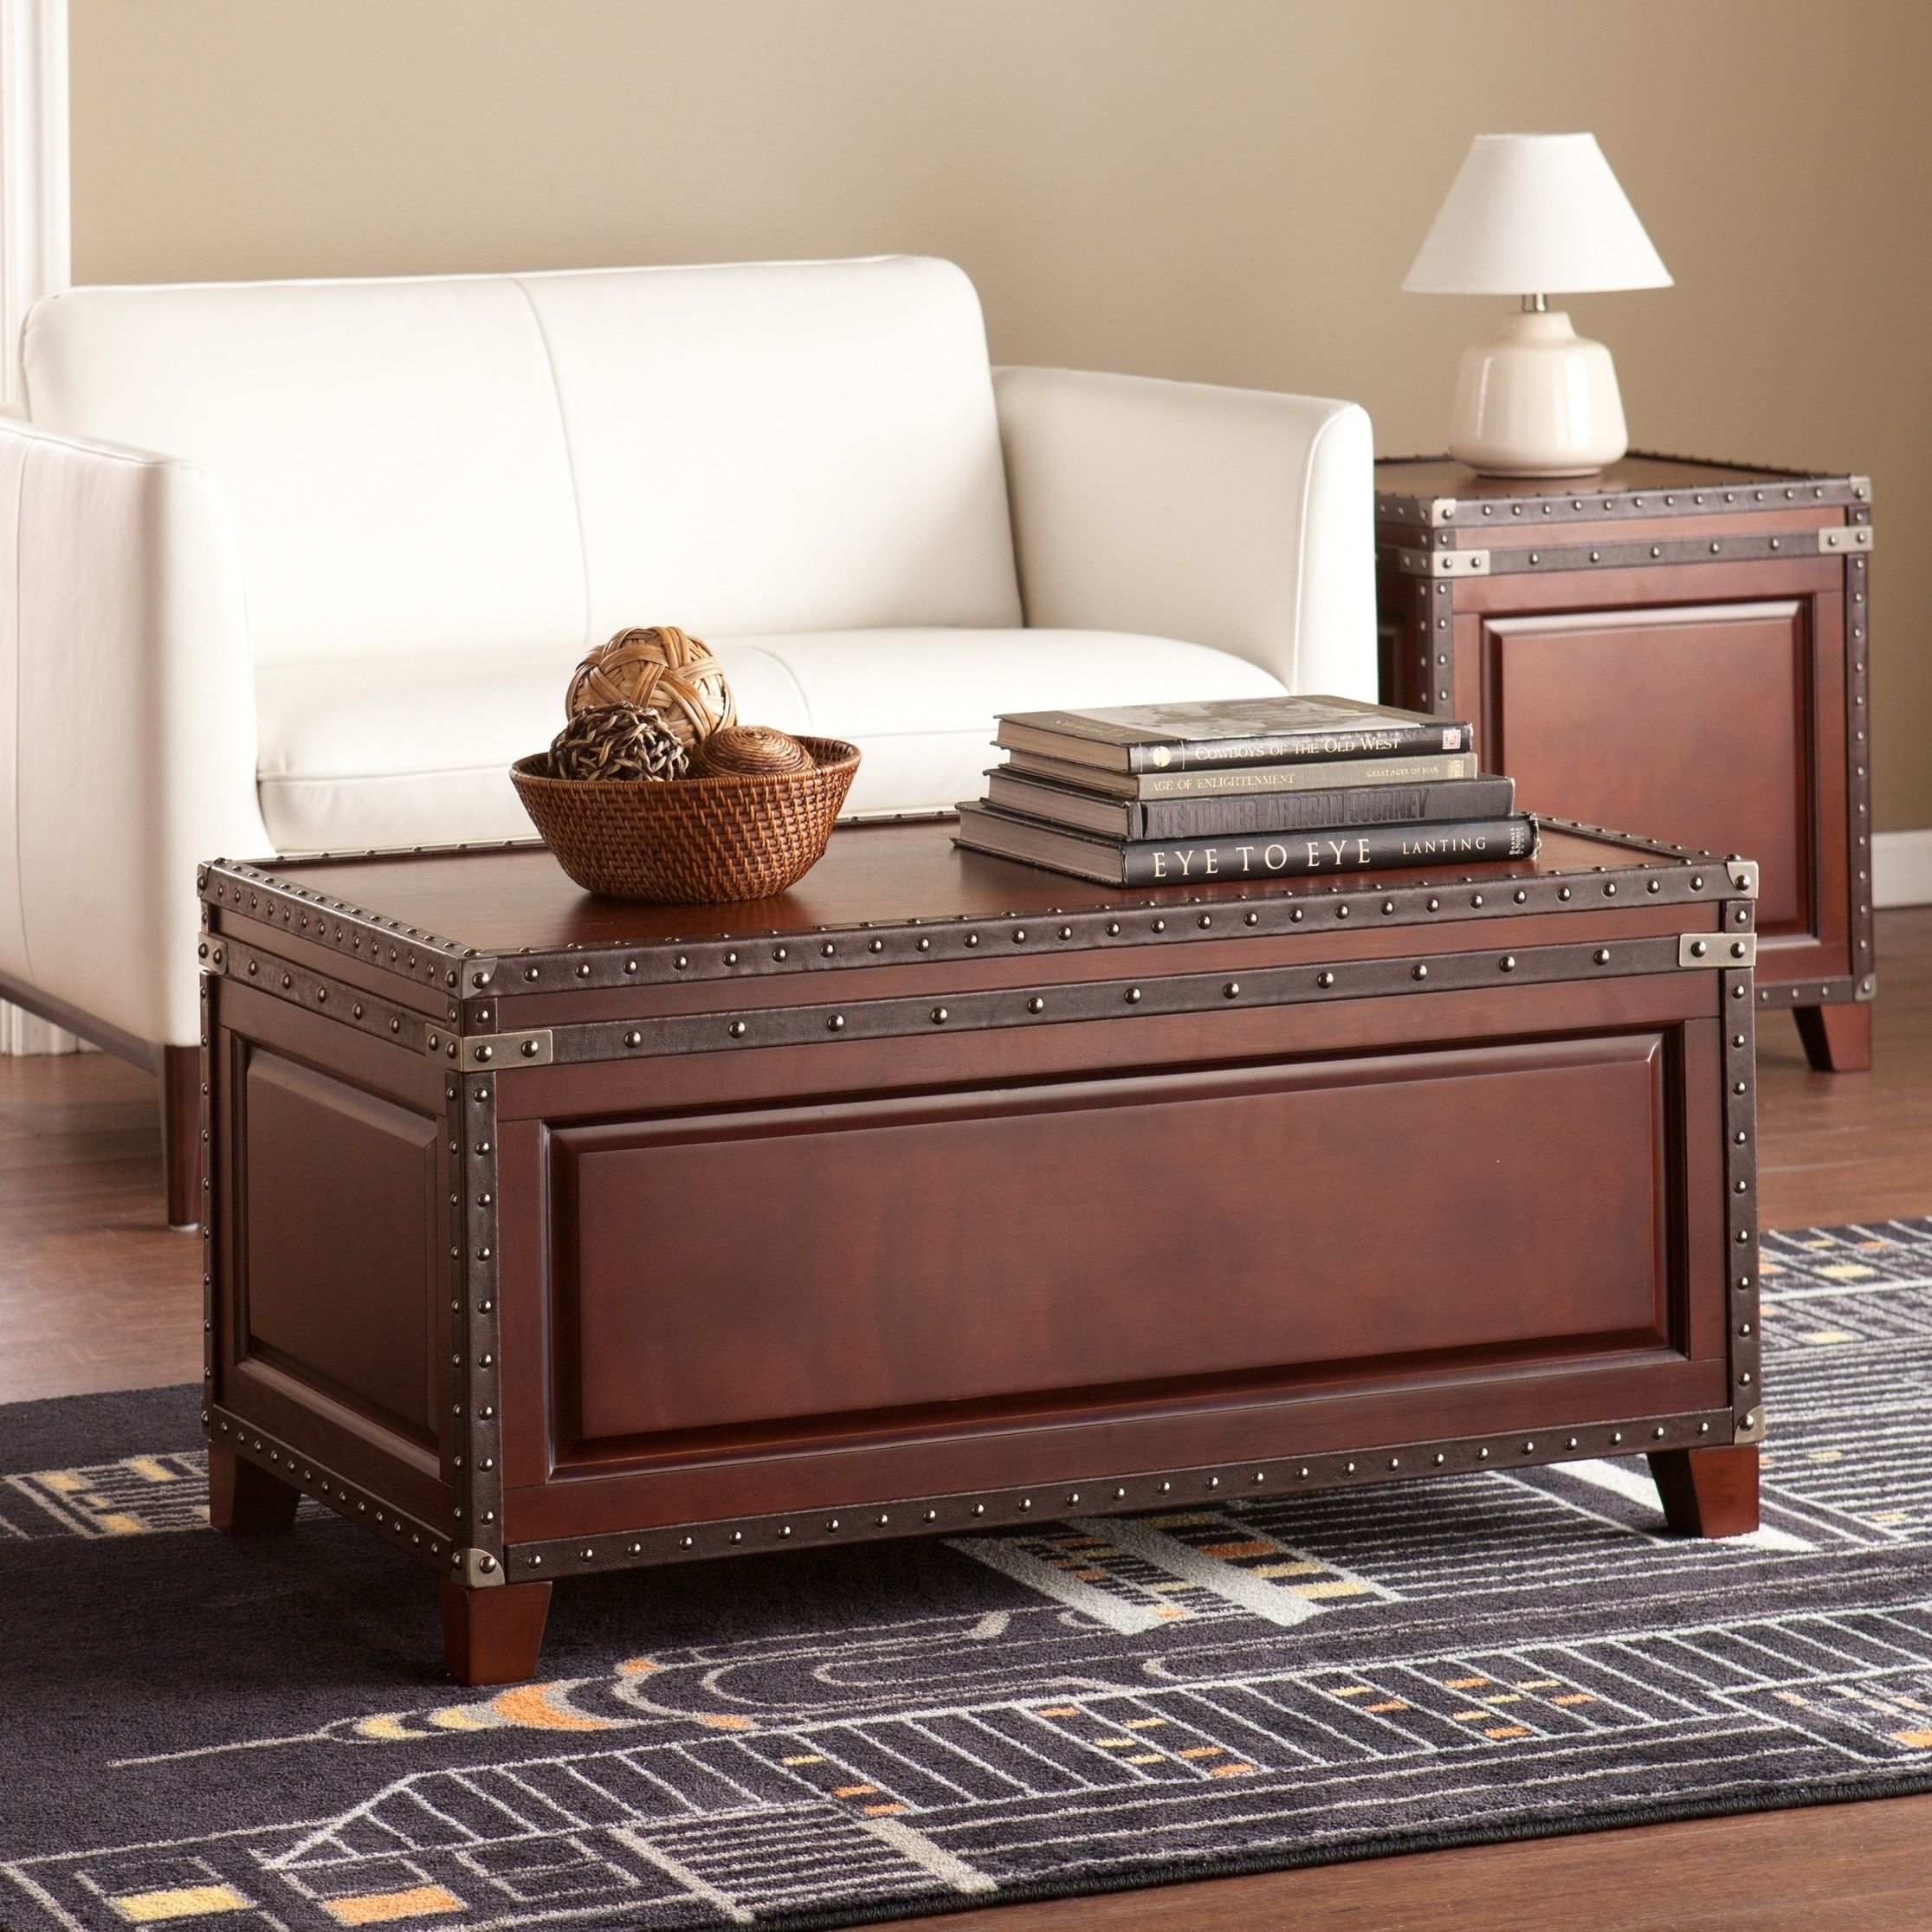 Buy Trunk Coffee Table from for everyday